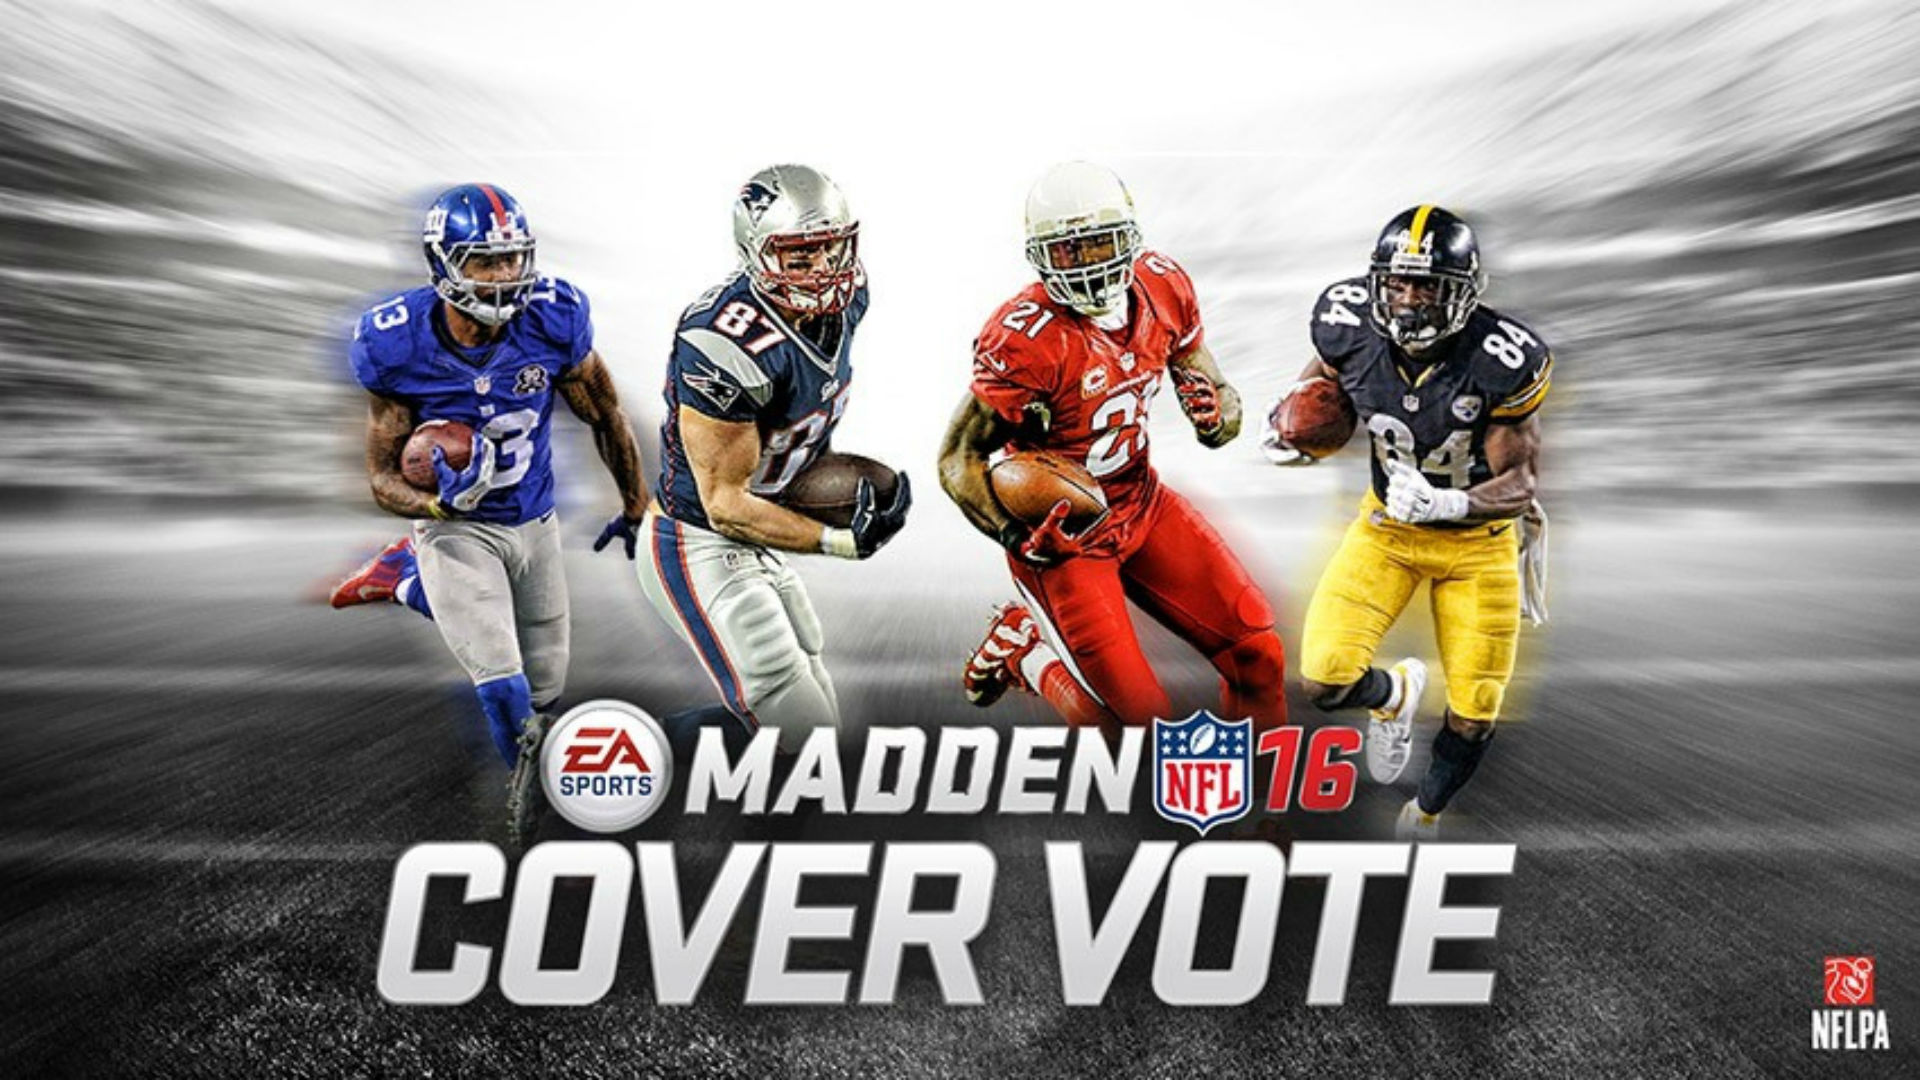 covers com nfl forum how many teams in nfl